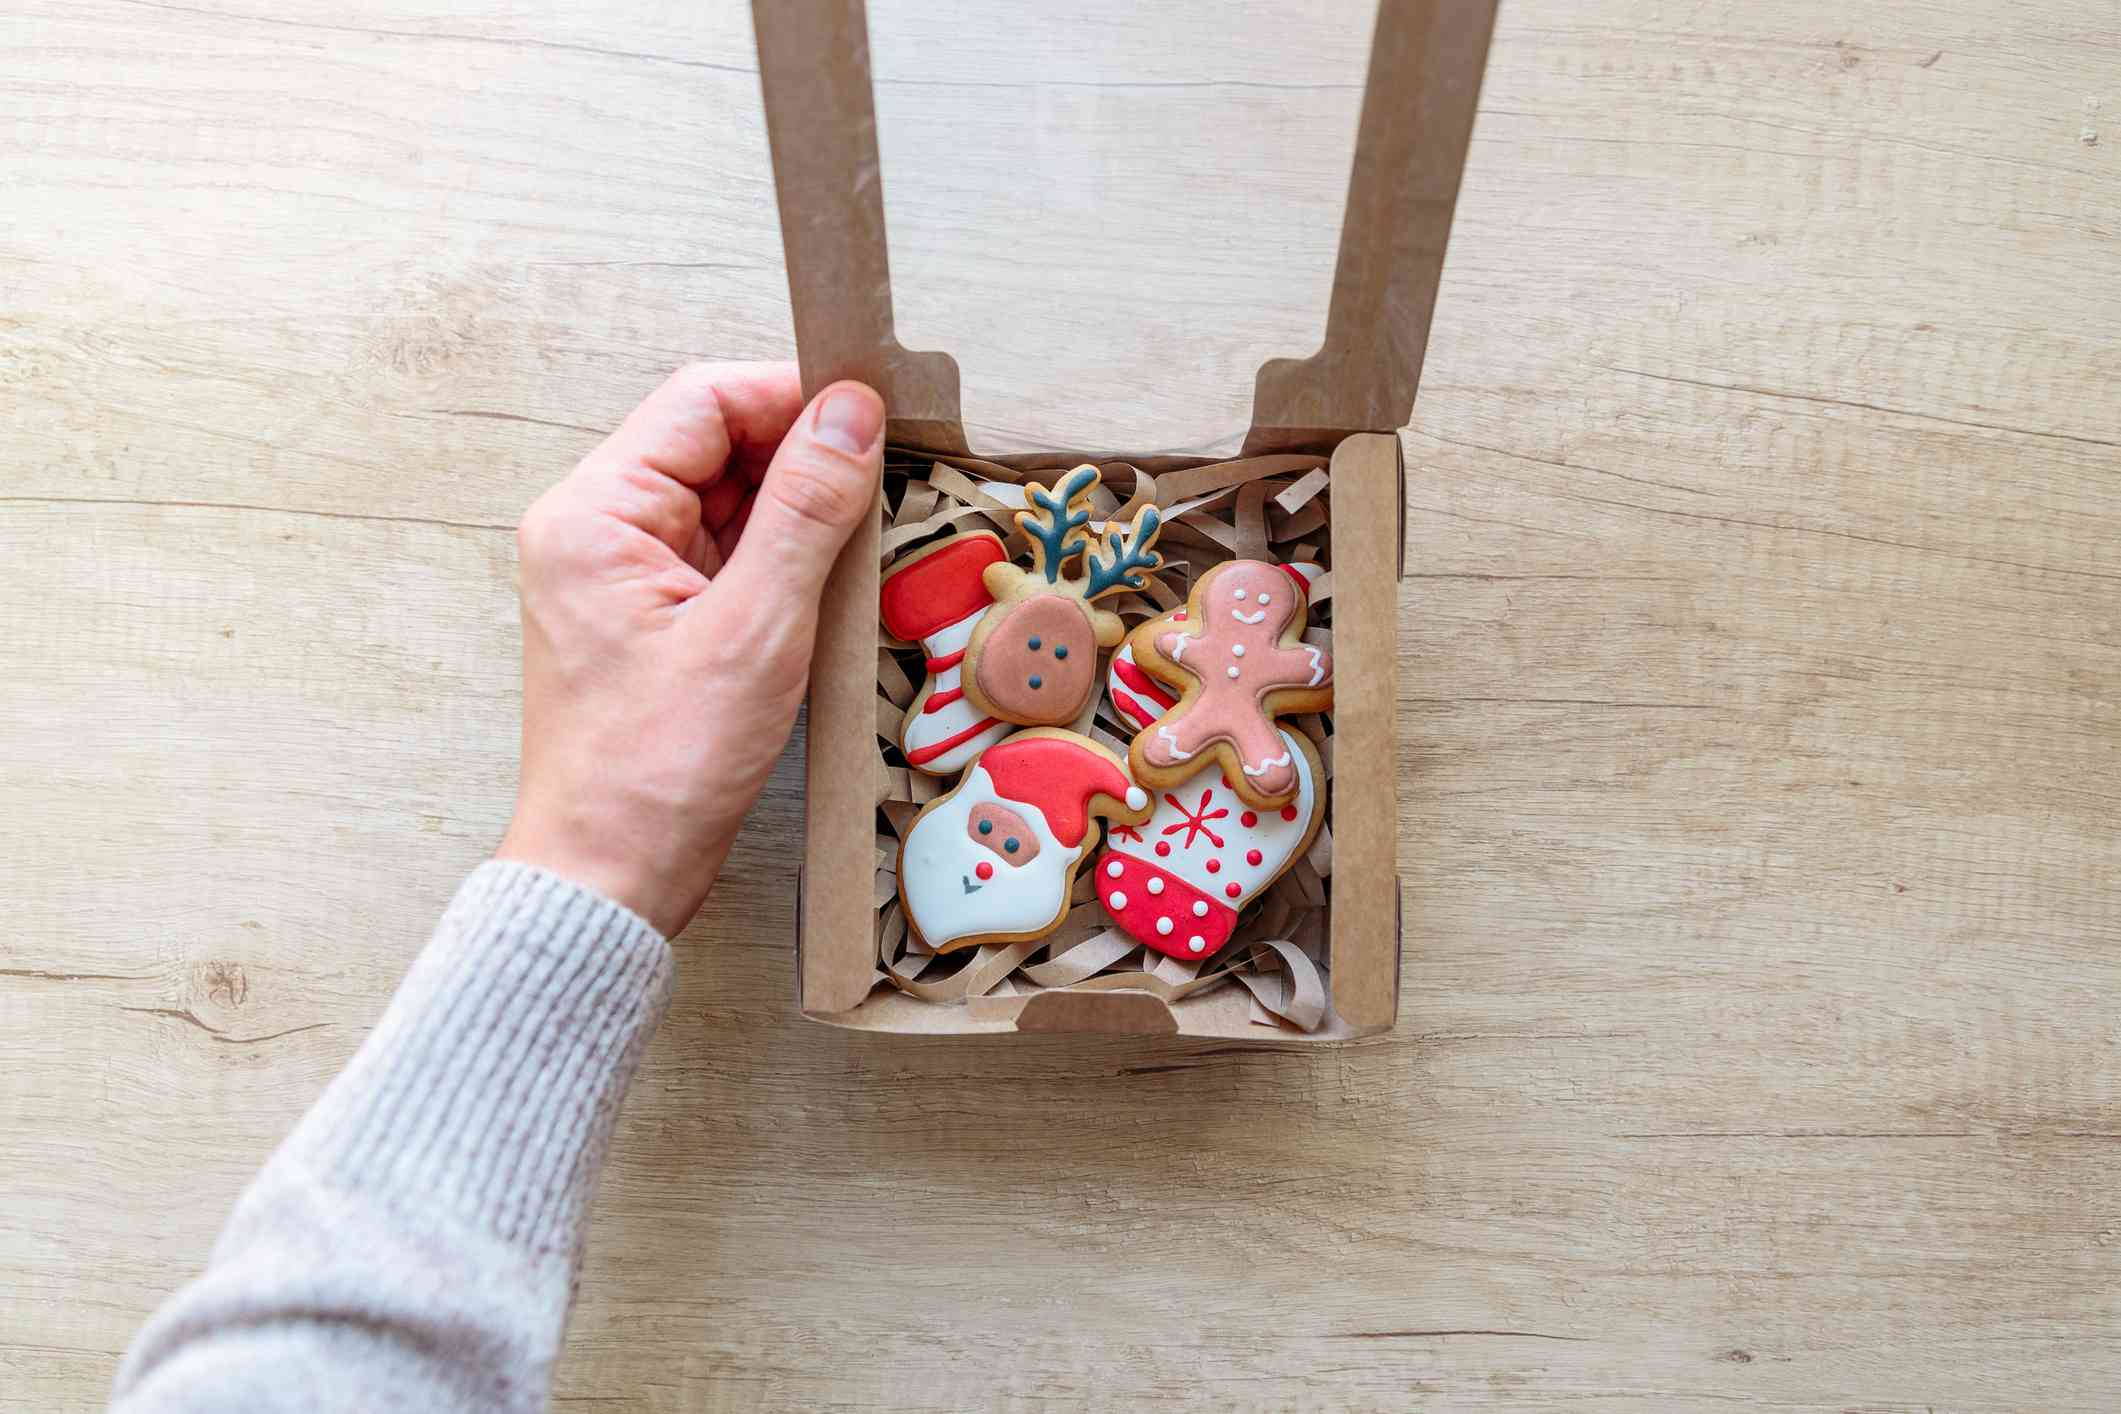 Opening Christmas present with Christmas cookies, personal perspective view